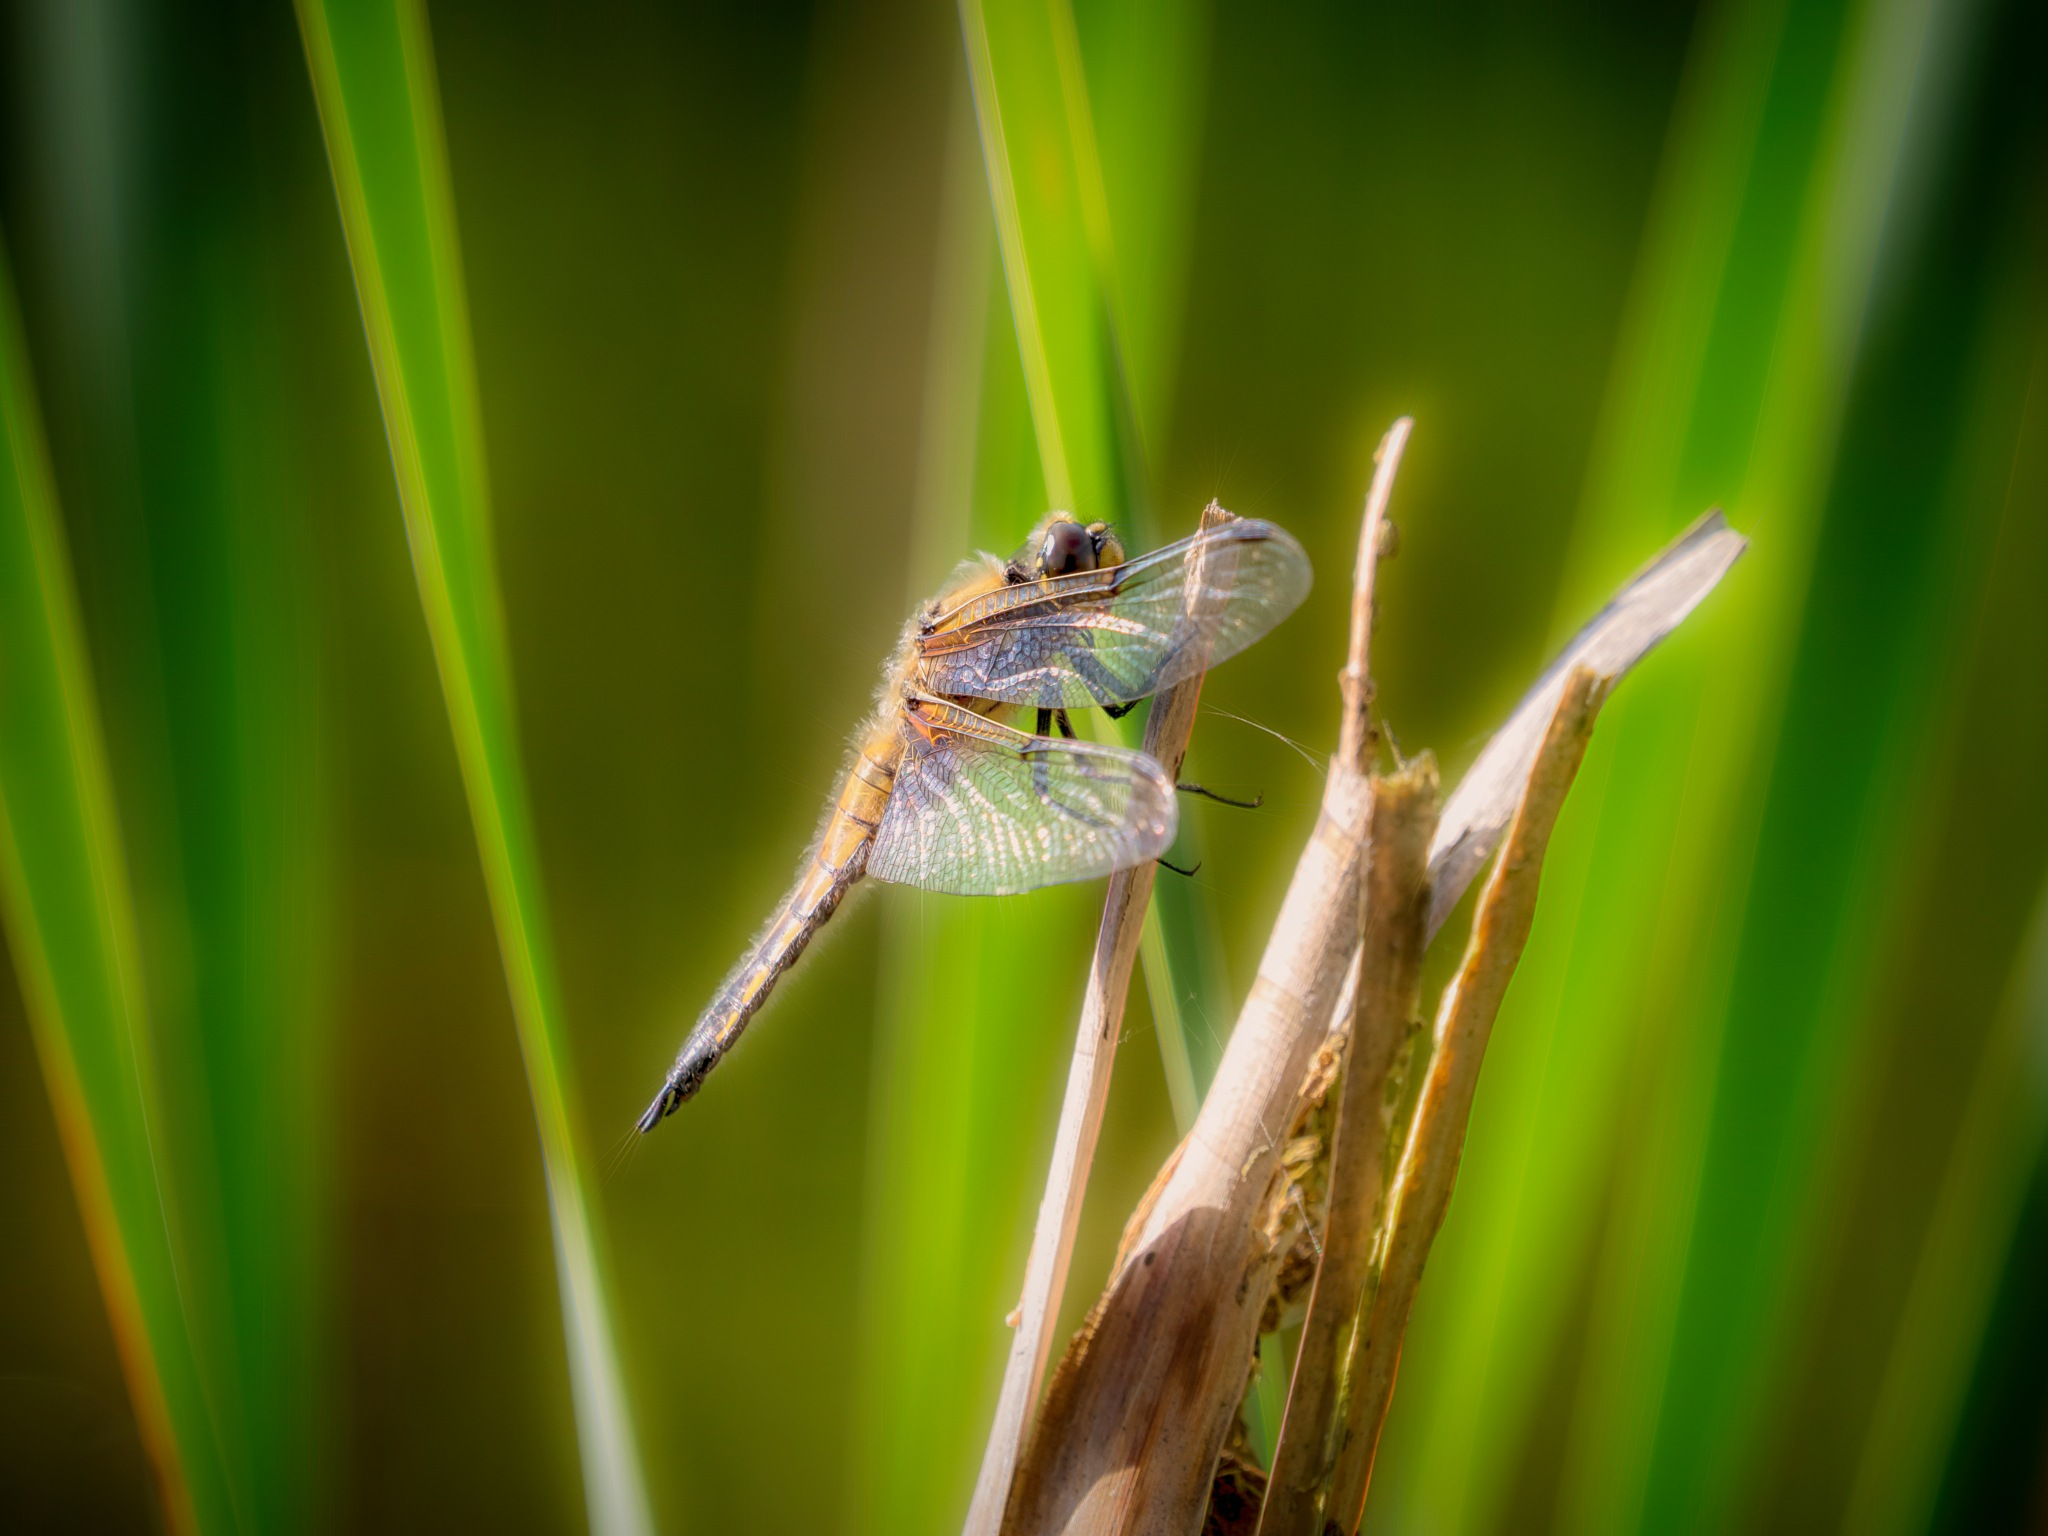 Dragonfly by Sarah Walters